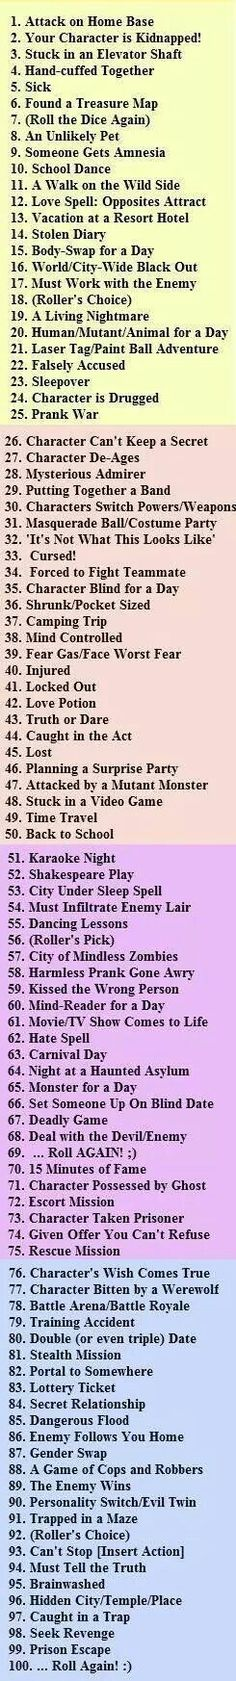 Most of these are great prompts even if you don't have set up characters!